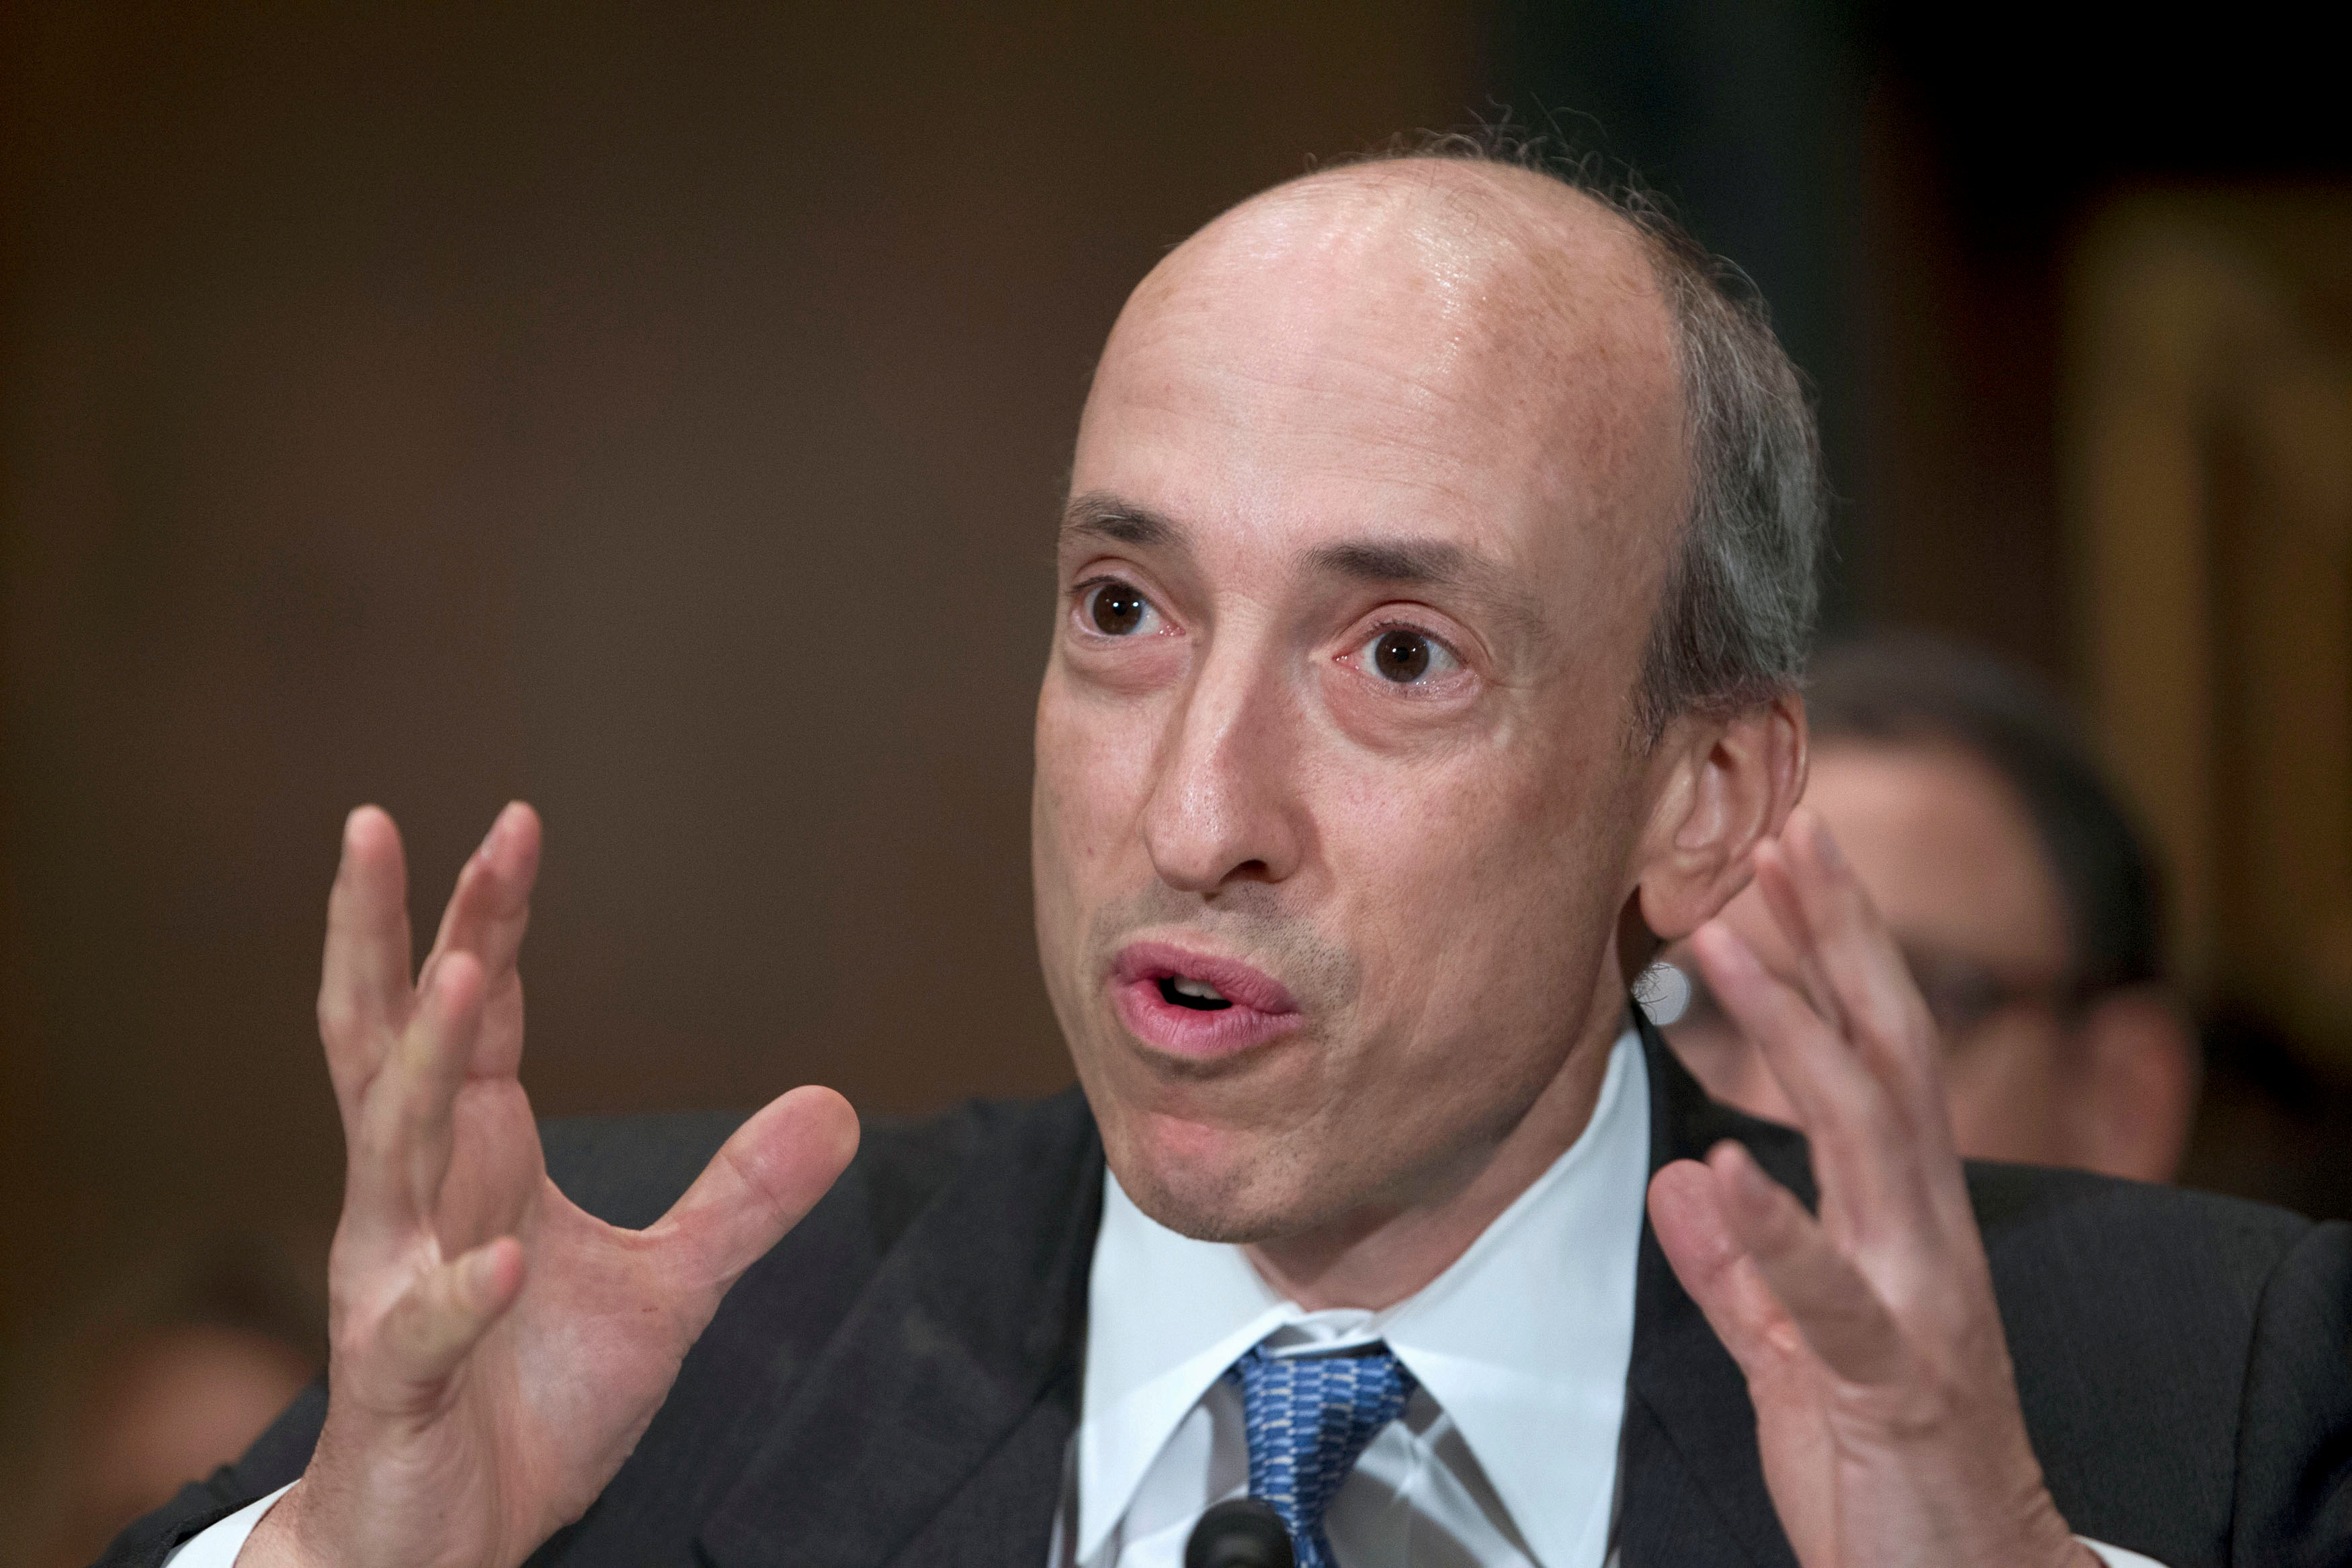 Then-Commodity Futures Trading Commission Chair Gary Gensler testifies at a Senate Banking, Housing and Urban Affairs Committee hearing on Capitol Hill July 30, 2013. REUTERS/Jose Luis Magana/File Photo